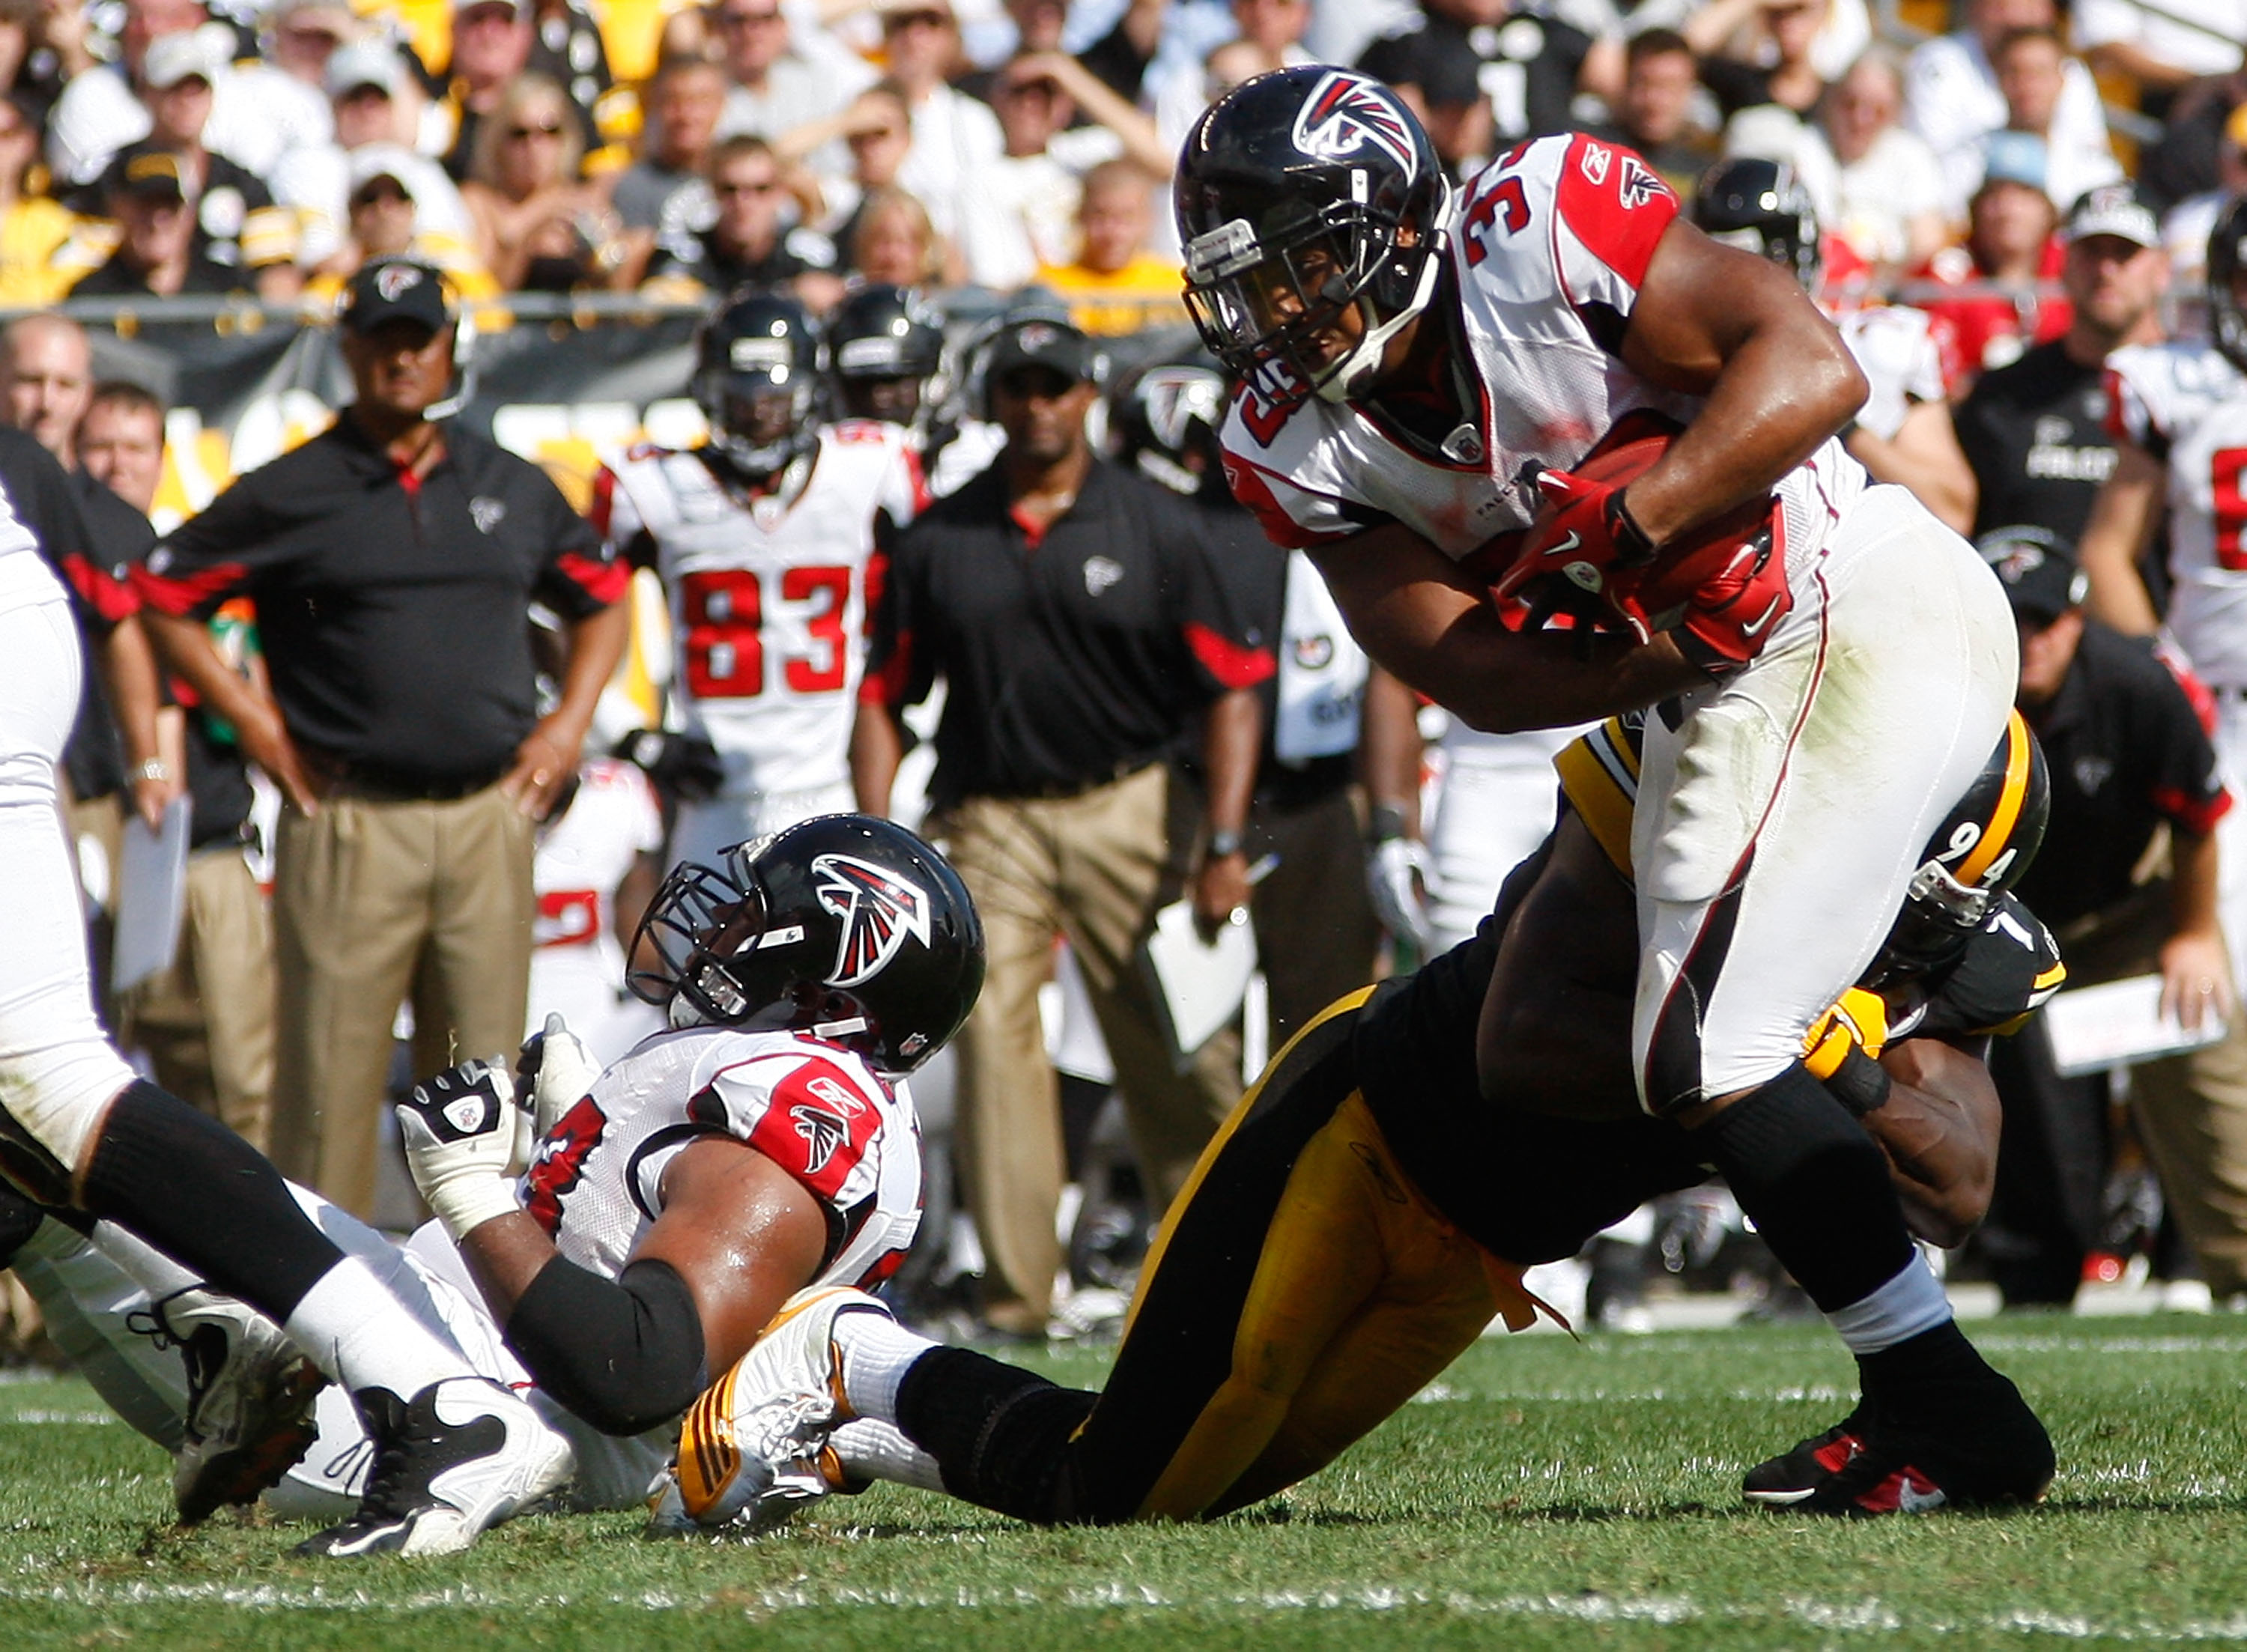 PITTSBURGH - SEPTEMBER 12:  Michael Turner #33 of the Atlanta Falcons attempts to run through Lawrence Timmons #94 of the Pittsburgh Steelers during the NFL season opener game on September 12, 2010 at Heinz Field in Pittsburgh, Pennsylvania.  (Photo by Ja